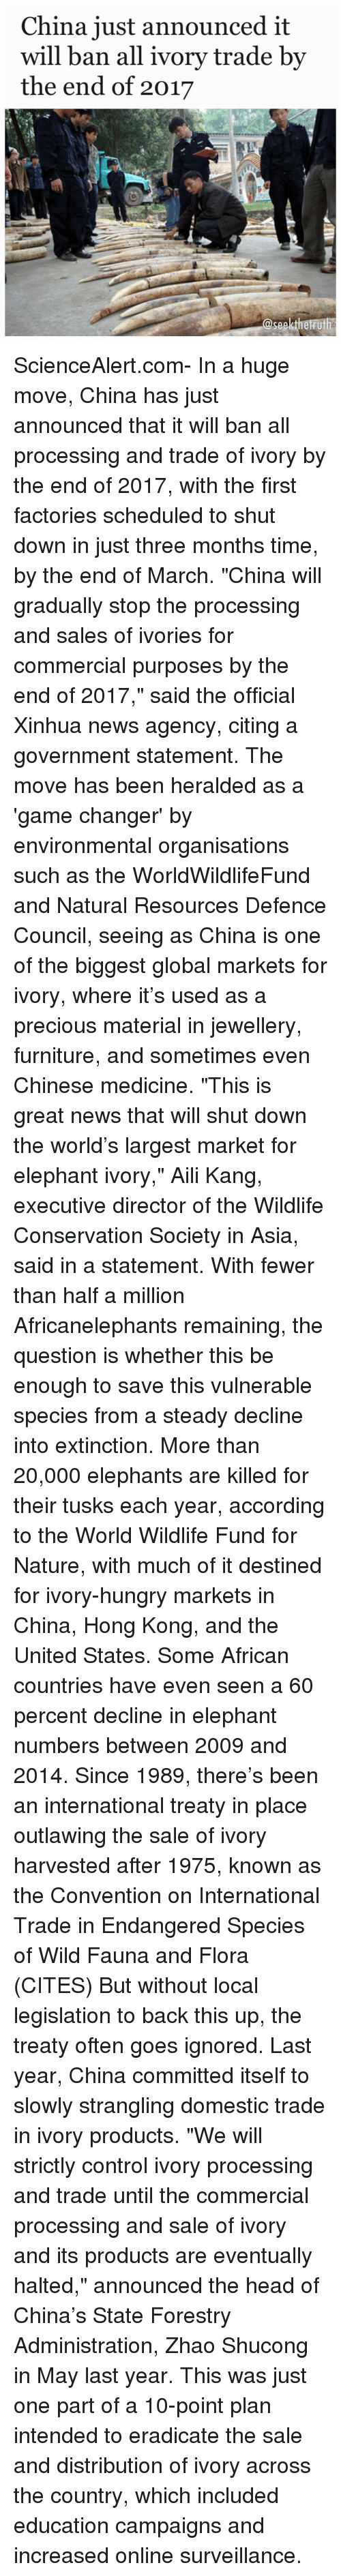 "Tusk: China just announced it  will ban all ivory trade by  the end of 2017  @seekthetruth ScienceAlert.com- In a huge move, China has just announced that it will ban all processing and trade of ivory by the end of 2017, with the first factories scheduled to shut down in just three months time, by the end of March. ""China will gradually stop the processing and sales of ivories for commercial purposes by the end of 2017,"" said the official Xinhua news agency, citing a government statement. The move has been heralded as a 'game changer' by environmental organisations such as the WorldWildlifeFund and Natural Resources Defence Council, seeing as China is one of the biggest global markets for ivory, where it's used as a precious material in jewellery, furniture, and sometimes even Chinese medicine. ""This is great news that will shut down the world's largest market for elephant ivory,"" Aili Kang, executive director of the Wildlife Conservation Society in Asia, said in a statement. With fewer than half a million Africanelephants remaining, the question is whether this be enough to save this vulnerable species from a steady decline into extinction. More than 20,000 elephants are killed for their tusks each year, according to the World Wildlife Fund for Nature, with much of it destined for ivory-hungry markets in China, Hong Kong, and the United States. Some African countries have even seen a 60 percent decline in elephant numbers between 2009 and 2014. Since 1989, there's been an international treaty in place outlawing the sale of ivory harvested after 1975, known as the Convention on International Trade in Endangered Species of Wild Fauna and Flora (CITES) But without local legislation to back this up, the treaty often goes ignored. Last year, China committed itself to slowly strangling domestic trade in ivory products. ""We will strictly control ivory processing and trade until the commercial processing and sale of ivory and its products are eventually halted,"" announced the head of China's State Forestry Administration, Zhao Shucong in May last year. This was just one part of a 10-point plan intended to eradicate the sale and distribution of ivory across the country, which included education campaigns and increased online surveillance."